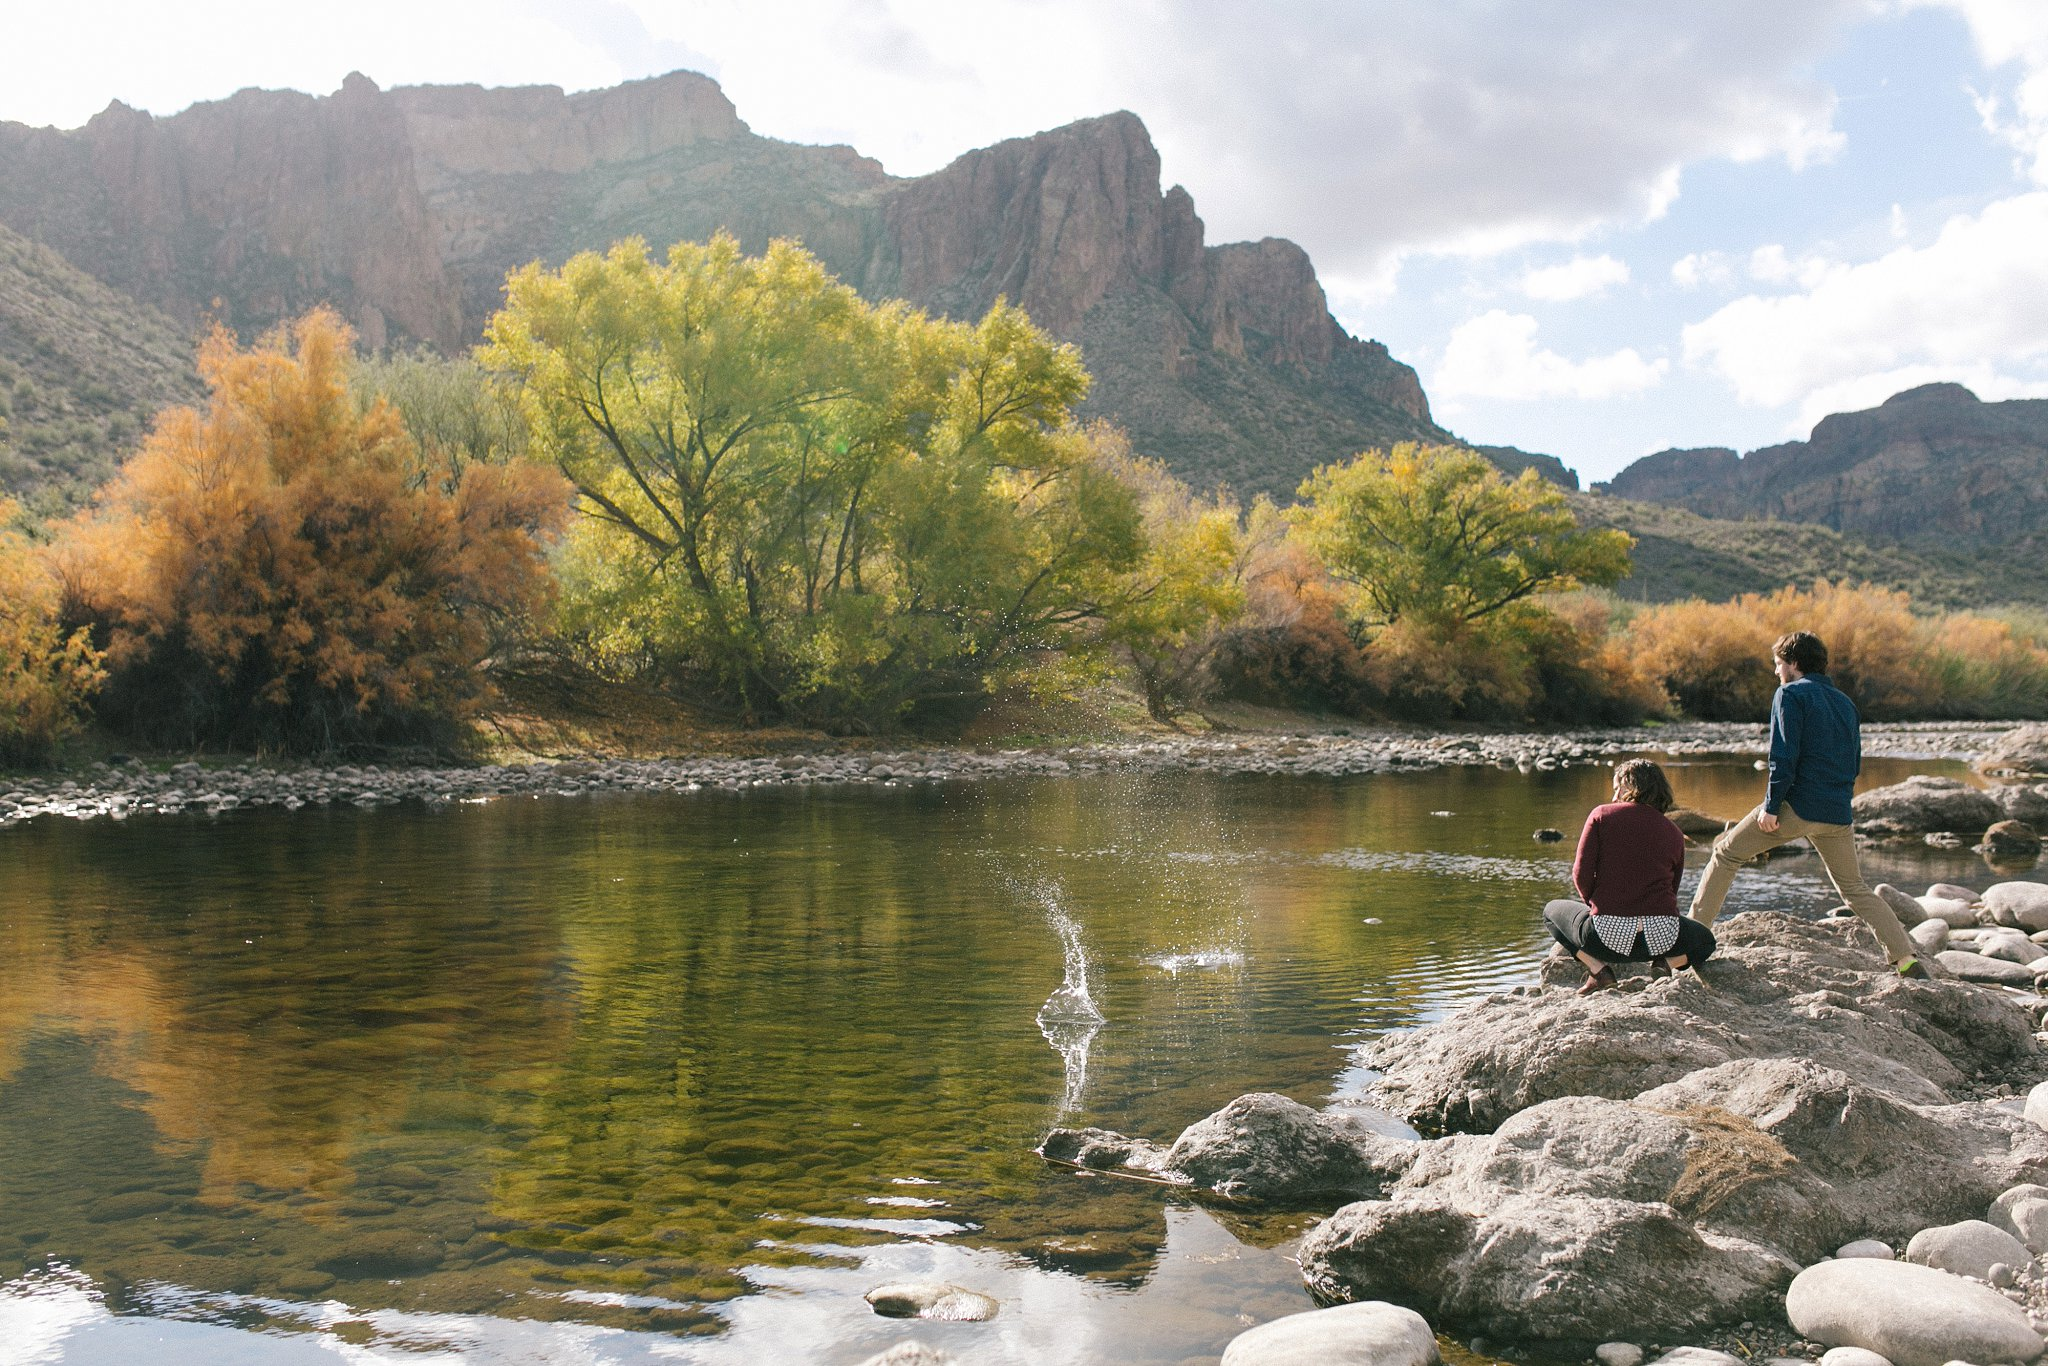 engagement session skipping rocks along Salt River & mountains in Arizona